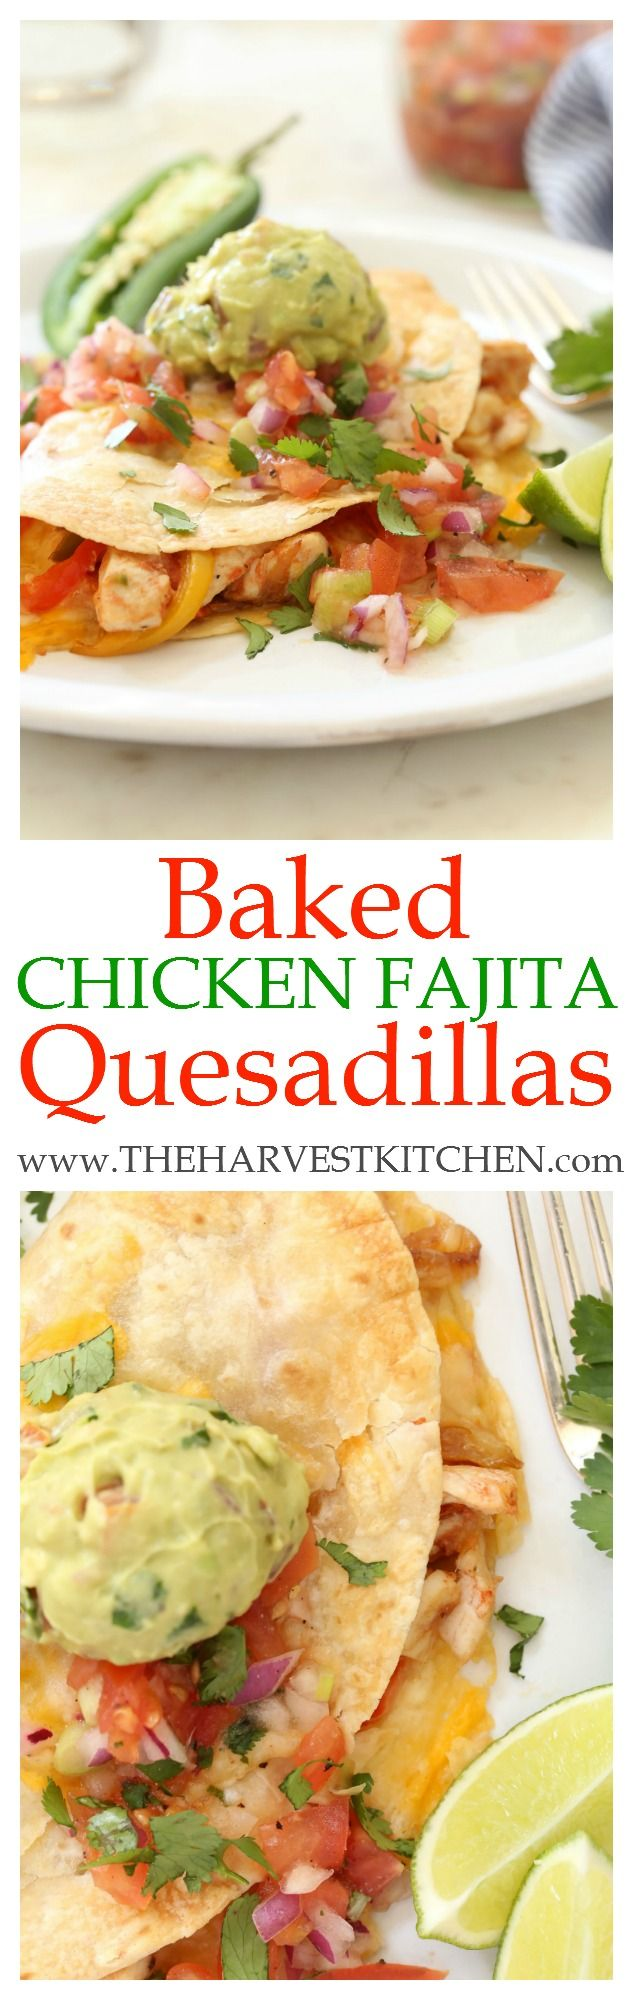 These crispy Baked Chicken Fajita Quesadillas are stuffed with savory Mexican flavors – tender bites of chicken cooked with garlic, jalapeño and tomato, some lightly browned onion, bell peppers and a blend of cheeses.